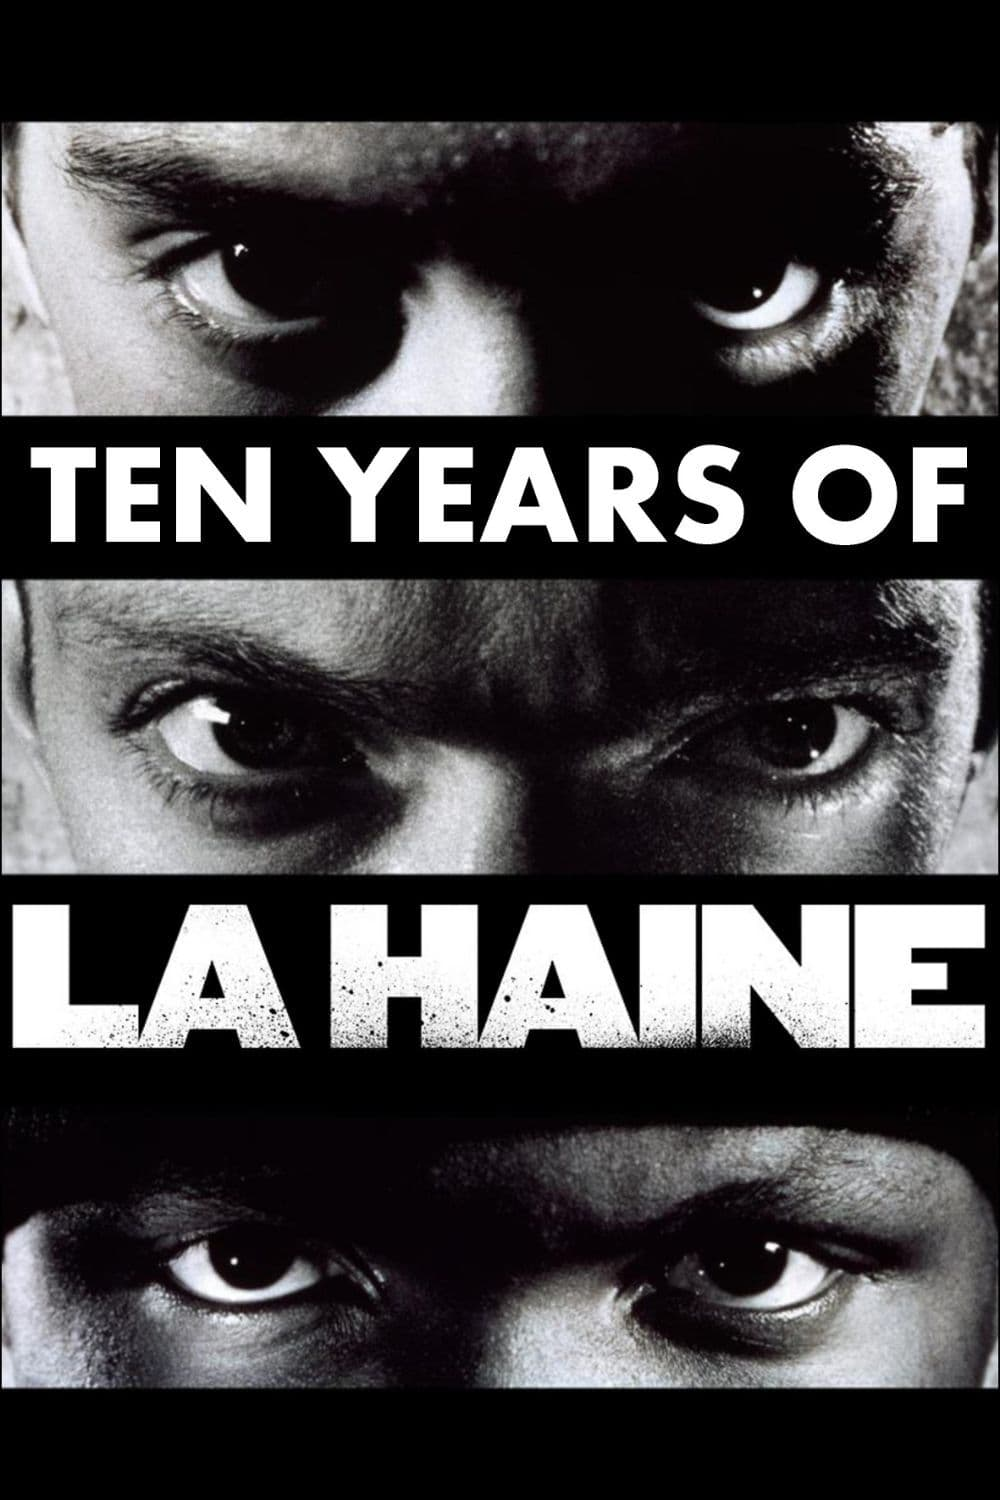 La Haine Film Streaming : haine, streaming, Years, Haine, French, Movie, Streaming, Online, Watch